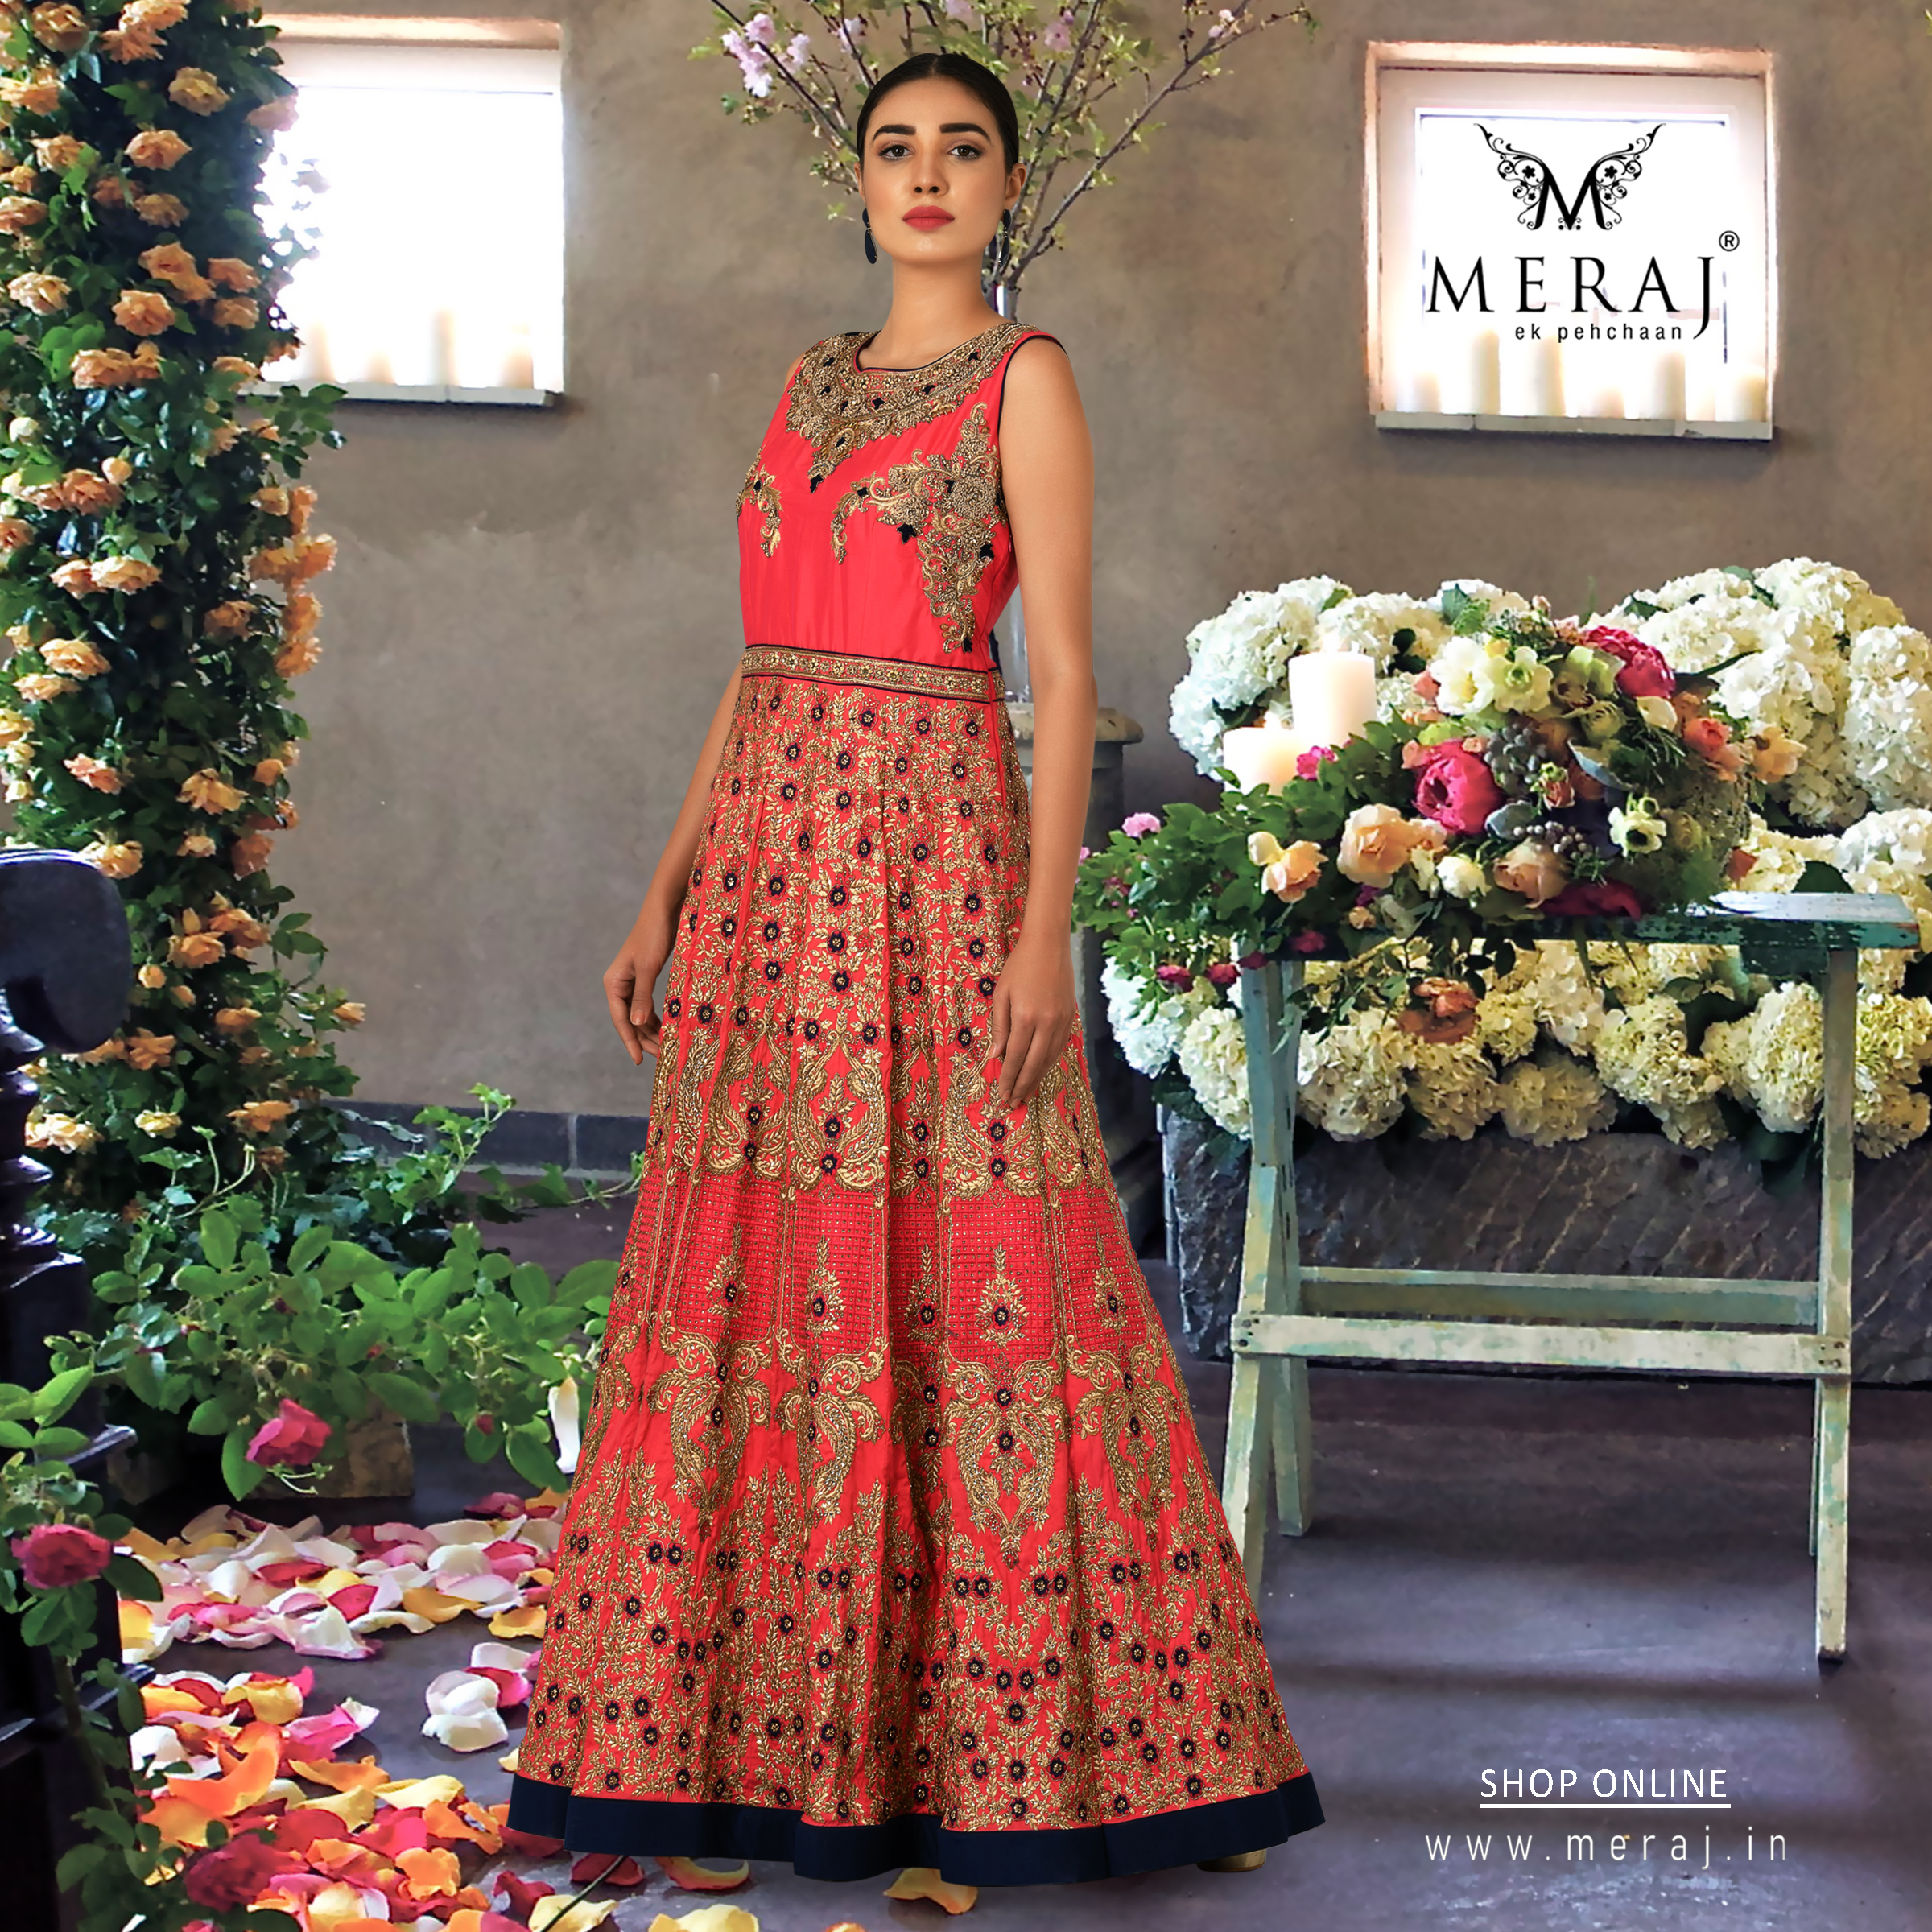 Get Instagram worthy pictures in these gorgeous outfits from our new Ramadan collection